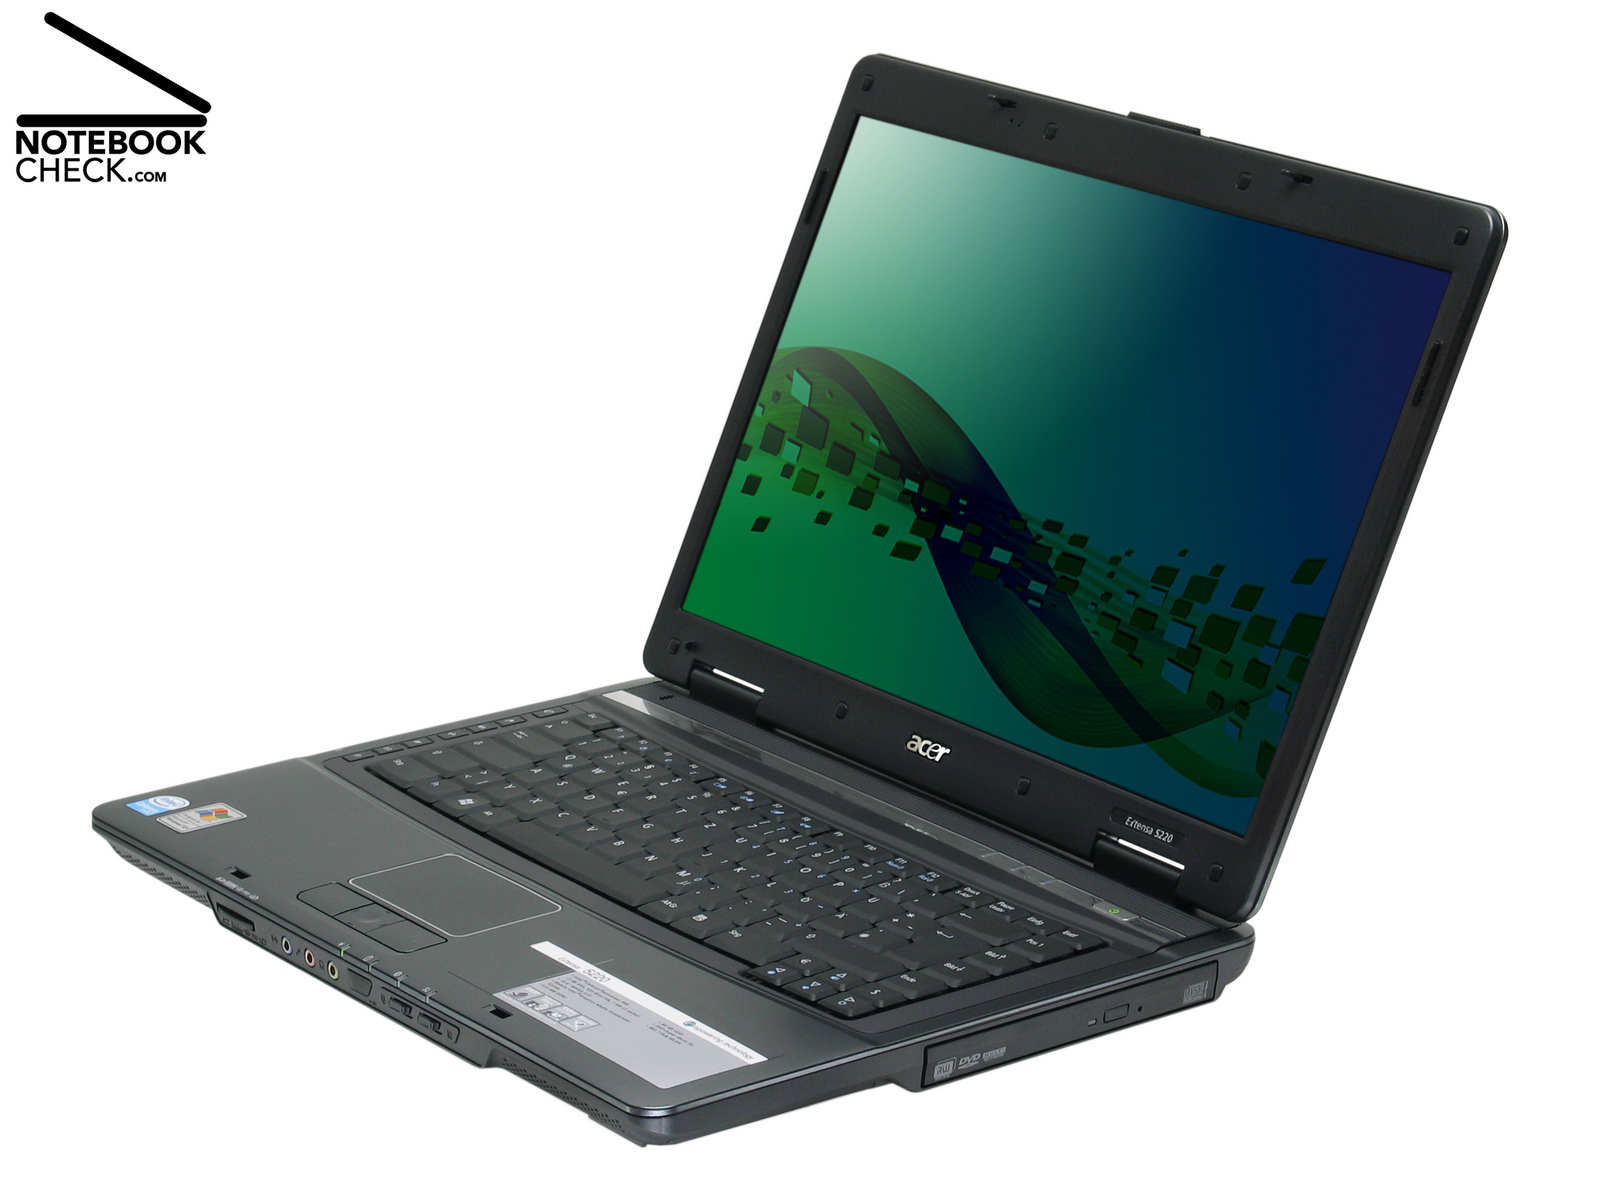 ACER EXTENSA5220 WINDOWS 7 DRIVERS DOWNLOAD